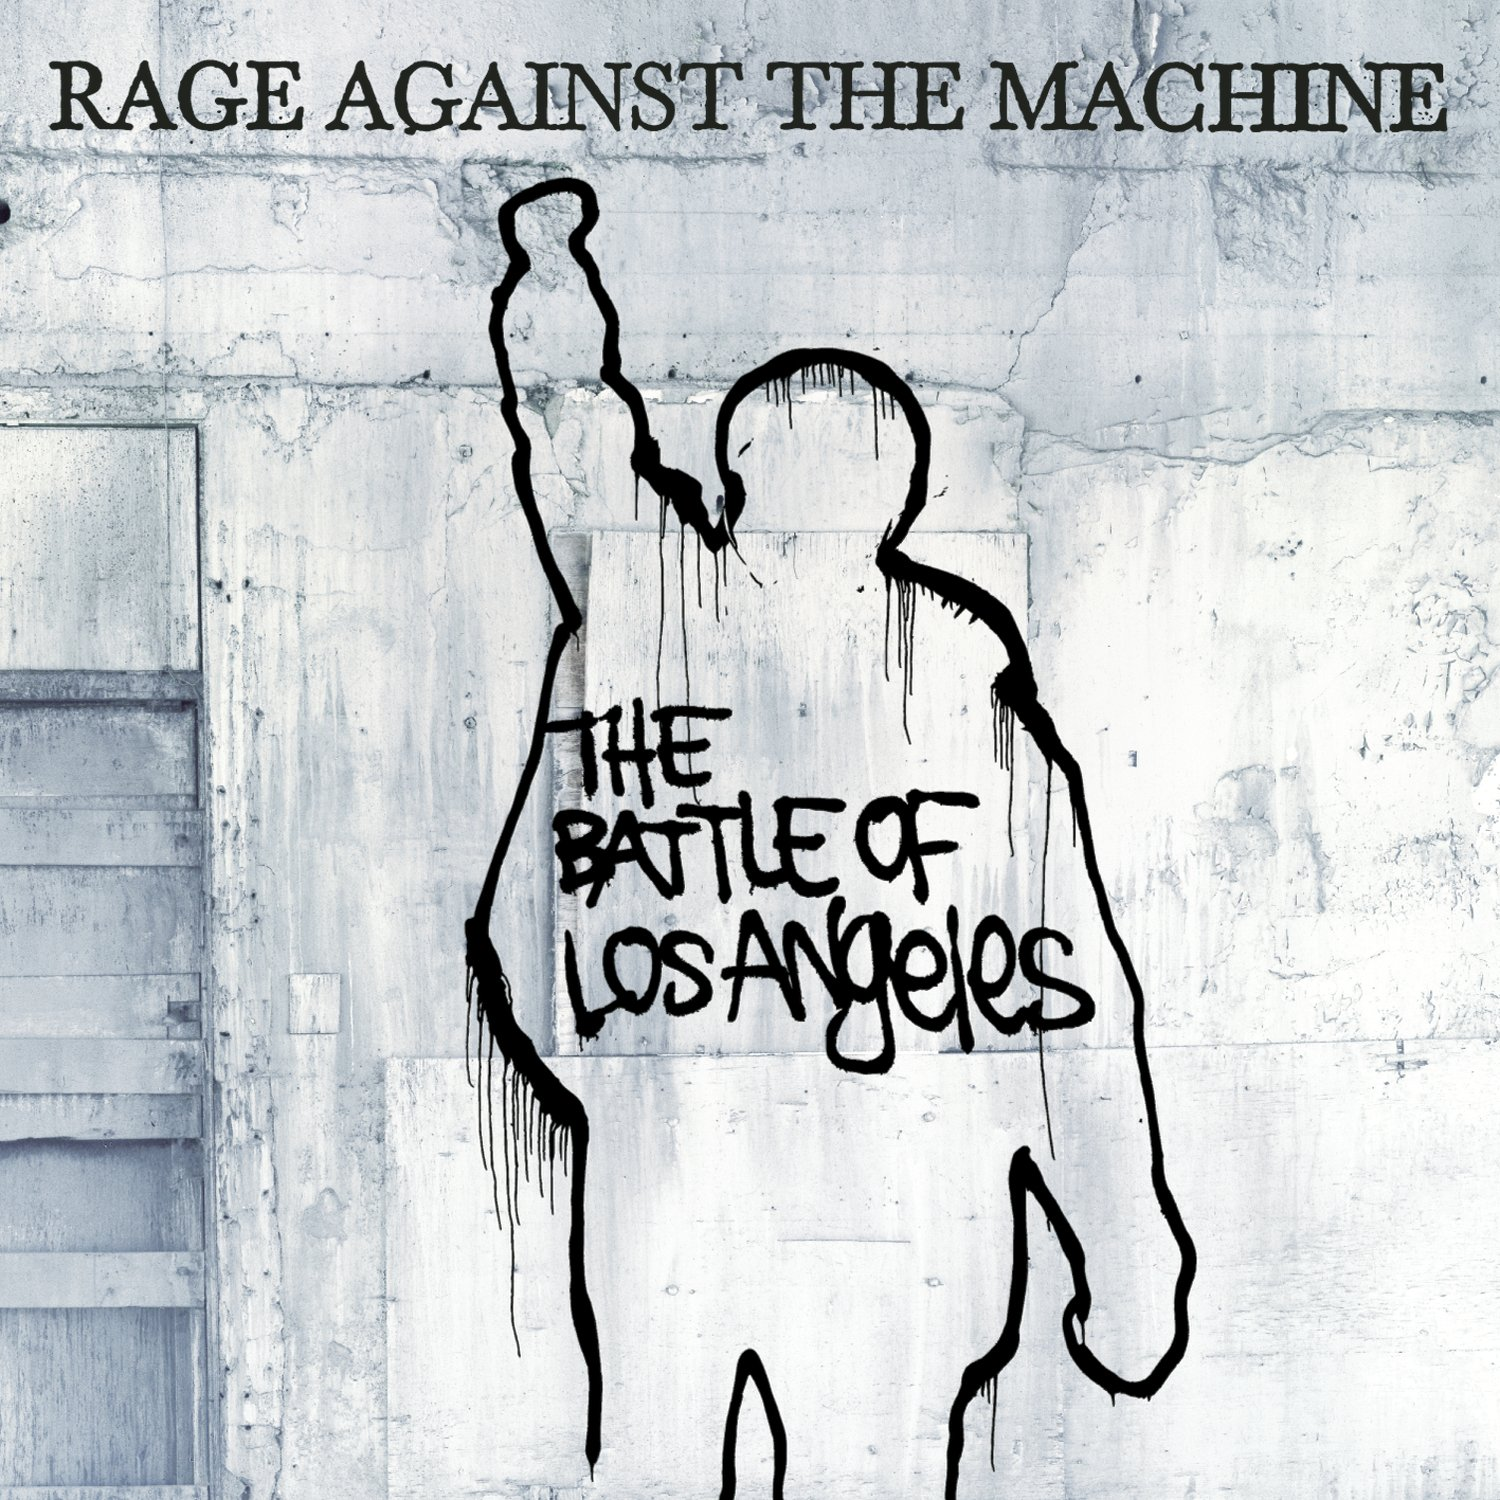 rage against the machine s studio album was released in